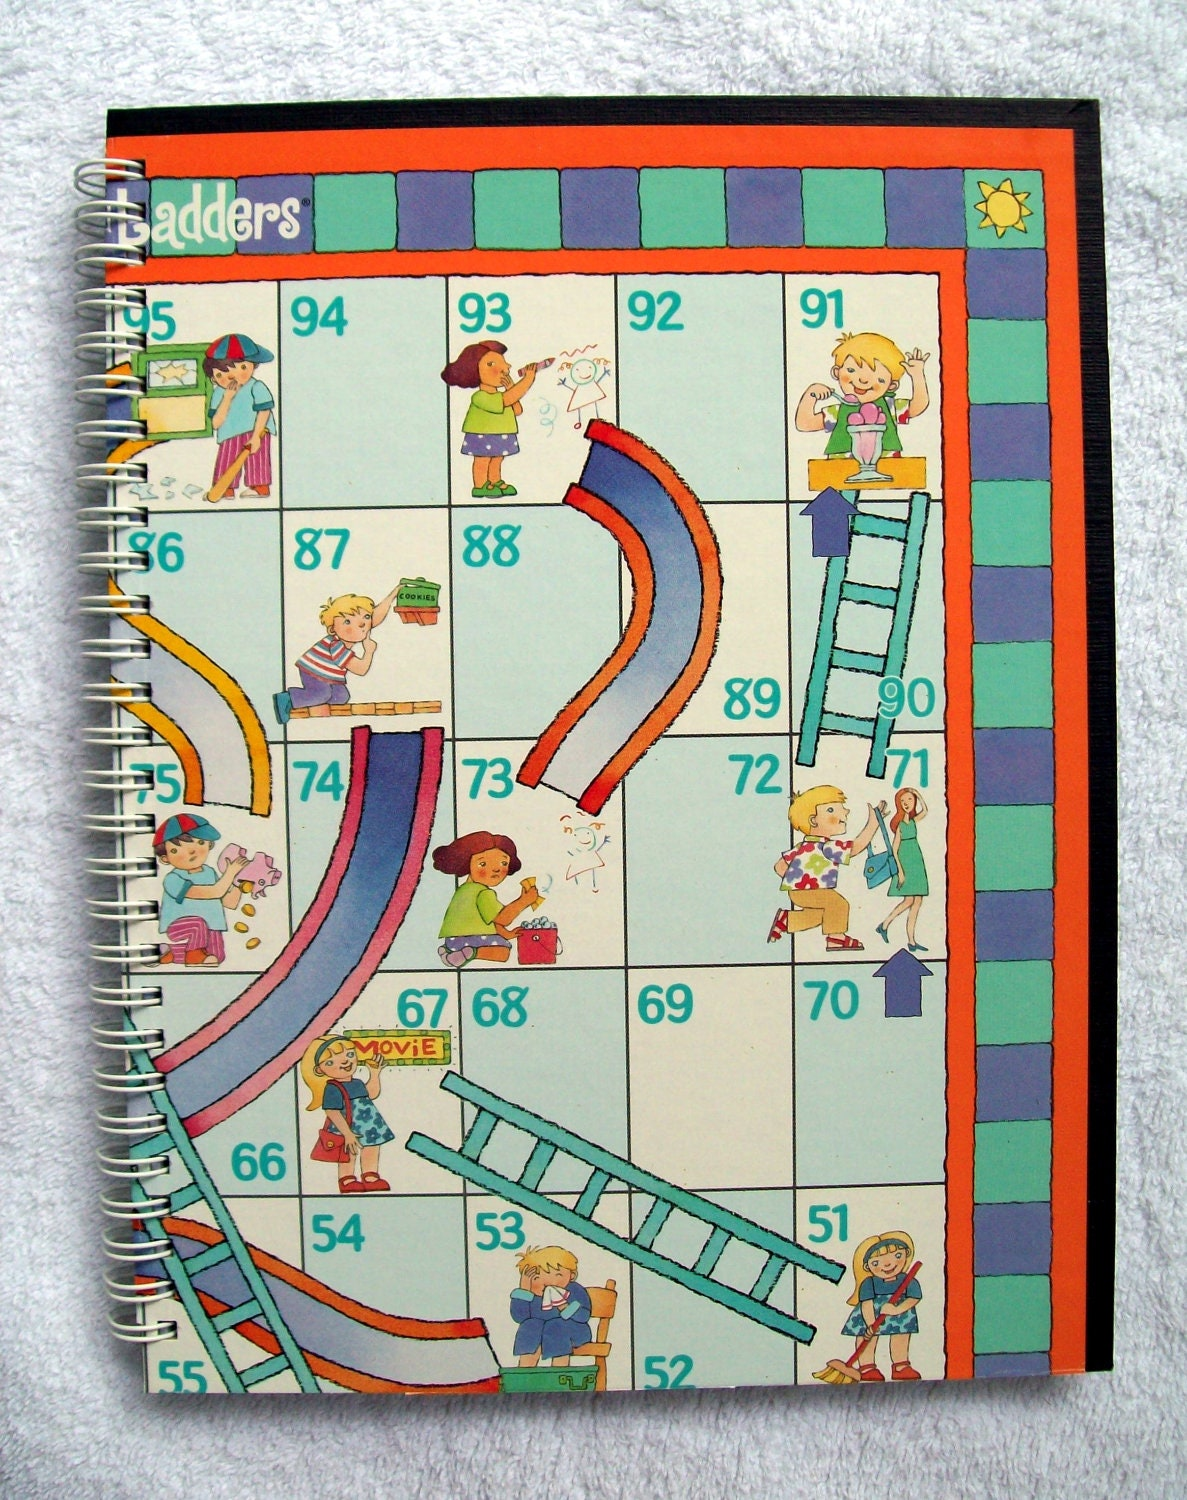 chutes and ladders board game template - chutes and ladders board new calendar template site